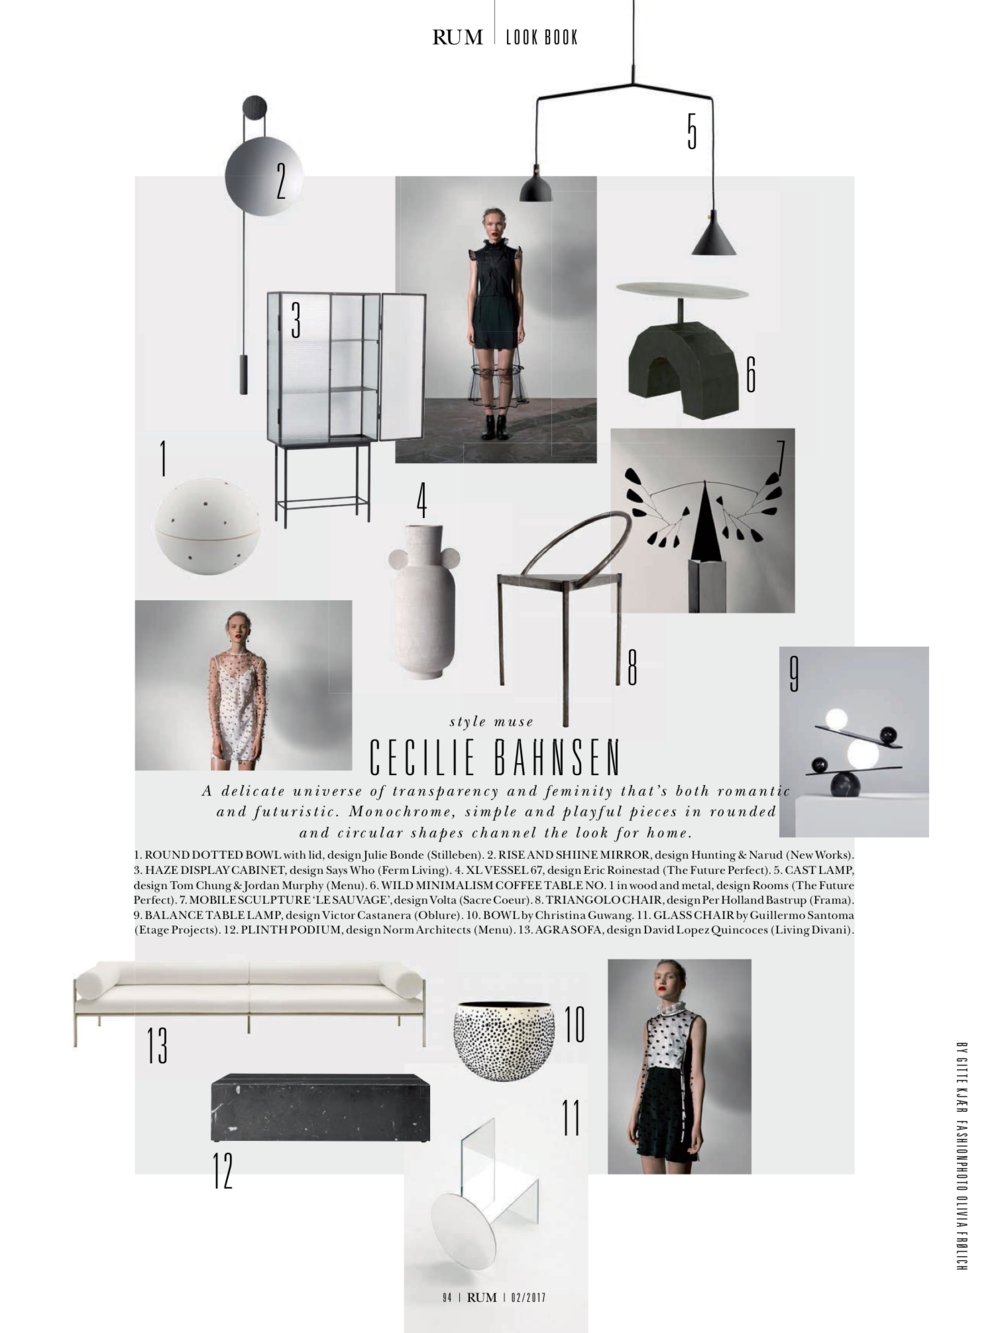 RUM International 2nd edition - Rise & Shine wall Mirror being part of a Cool futuristic mood board.